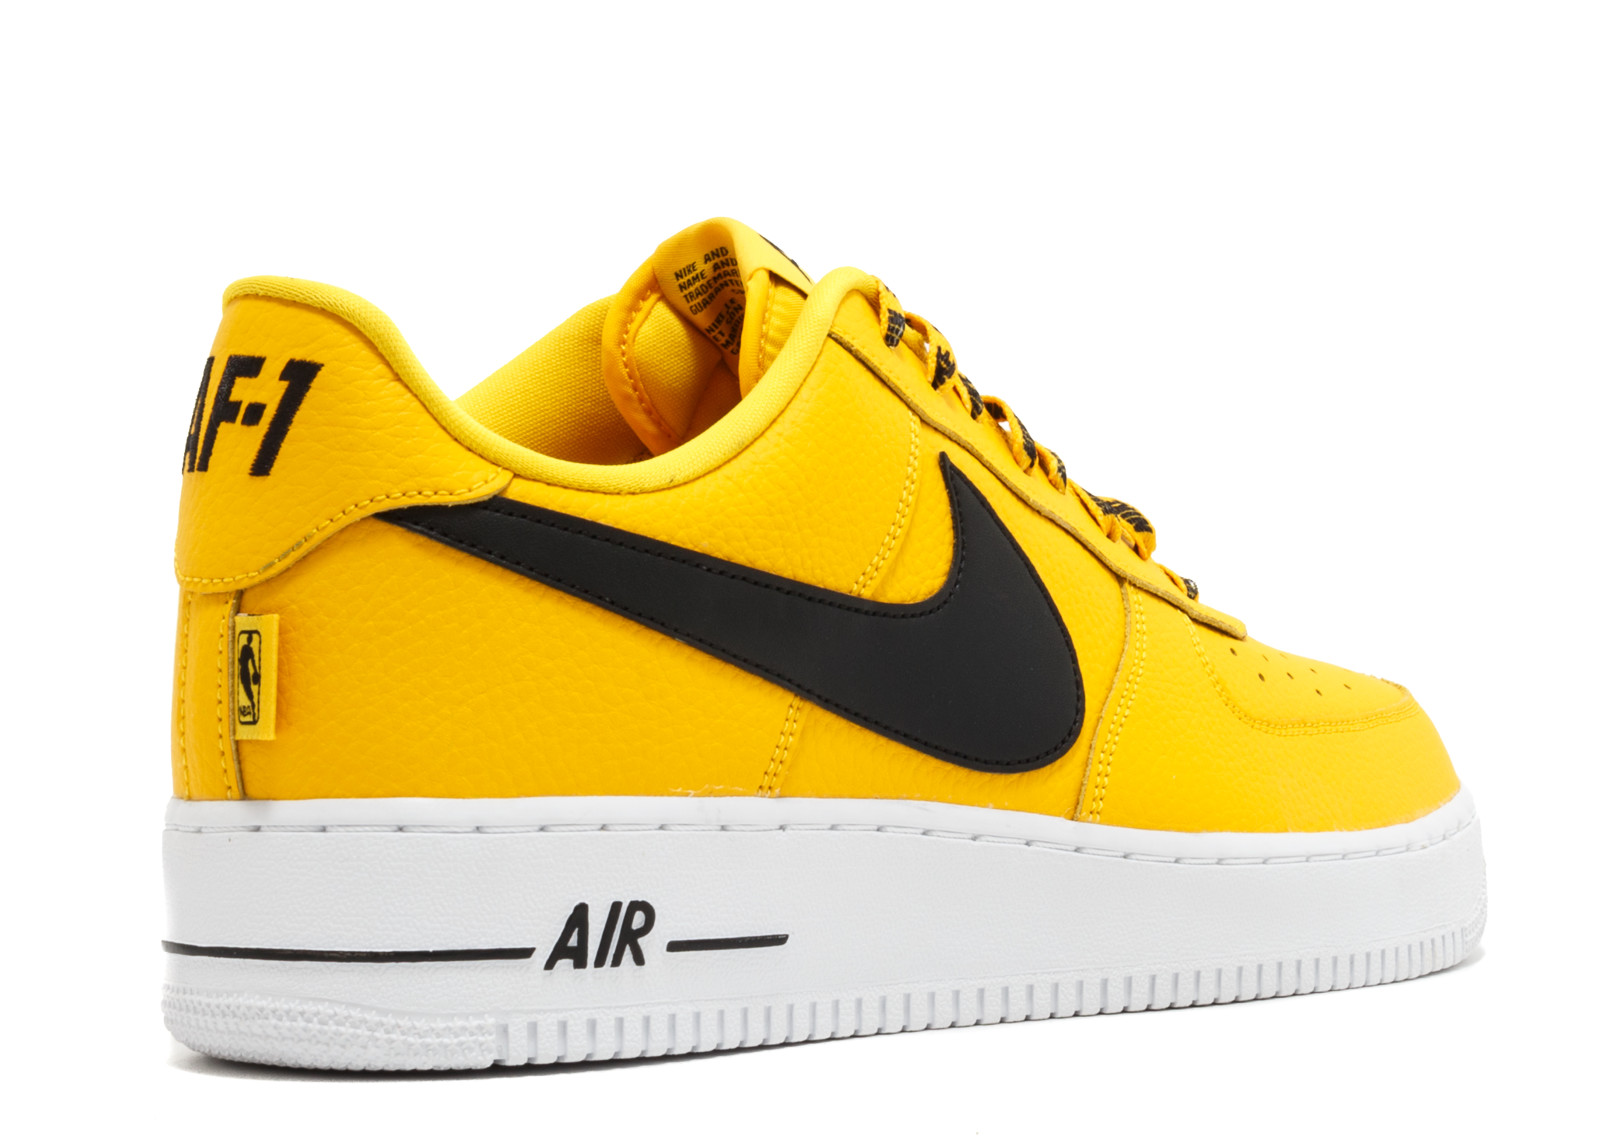 Air Force 107 Lv8 Nba Pack White Black Amarillo 823511-701